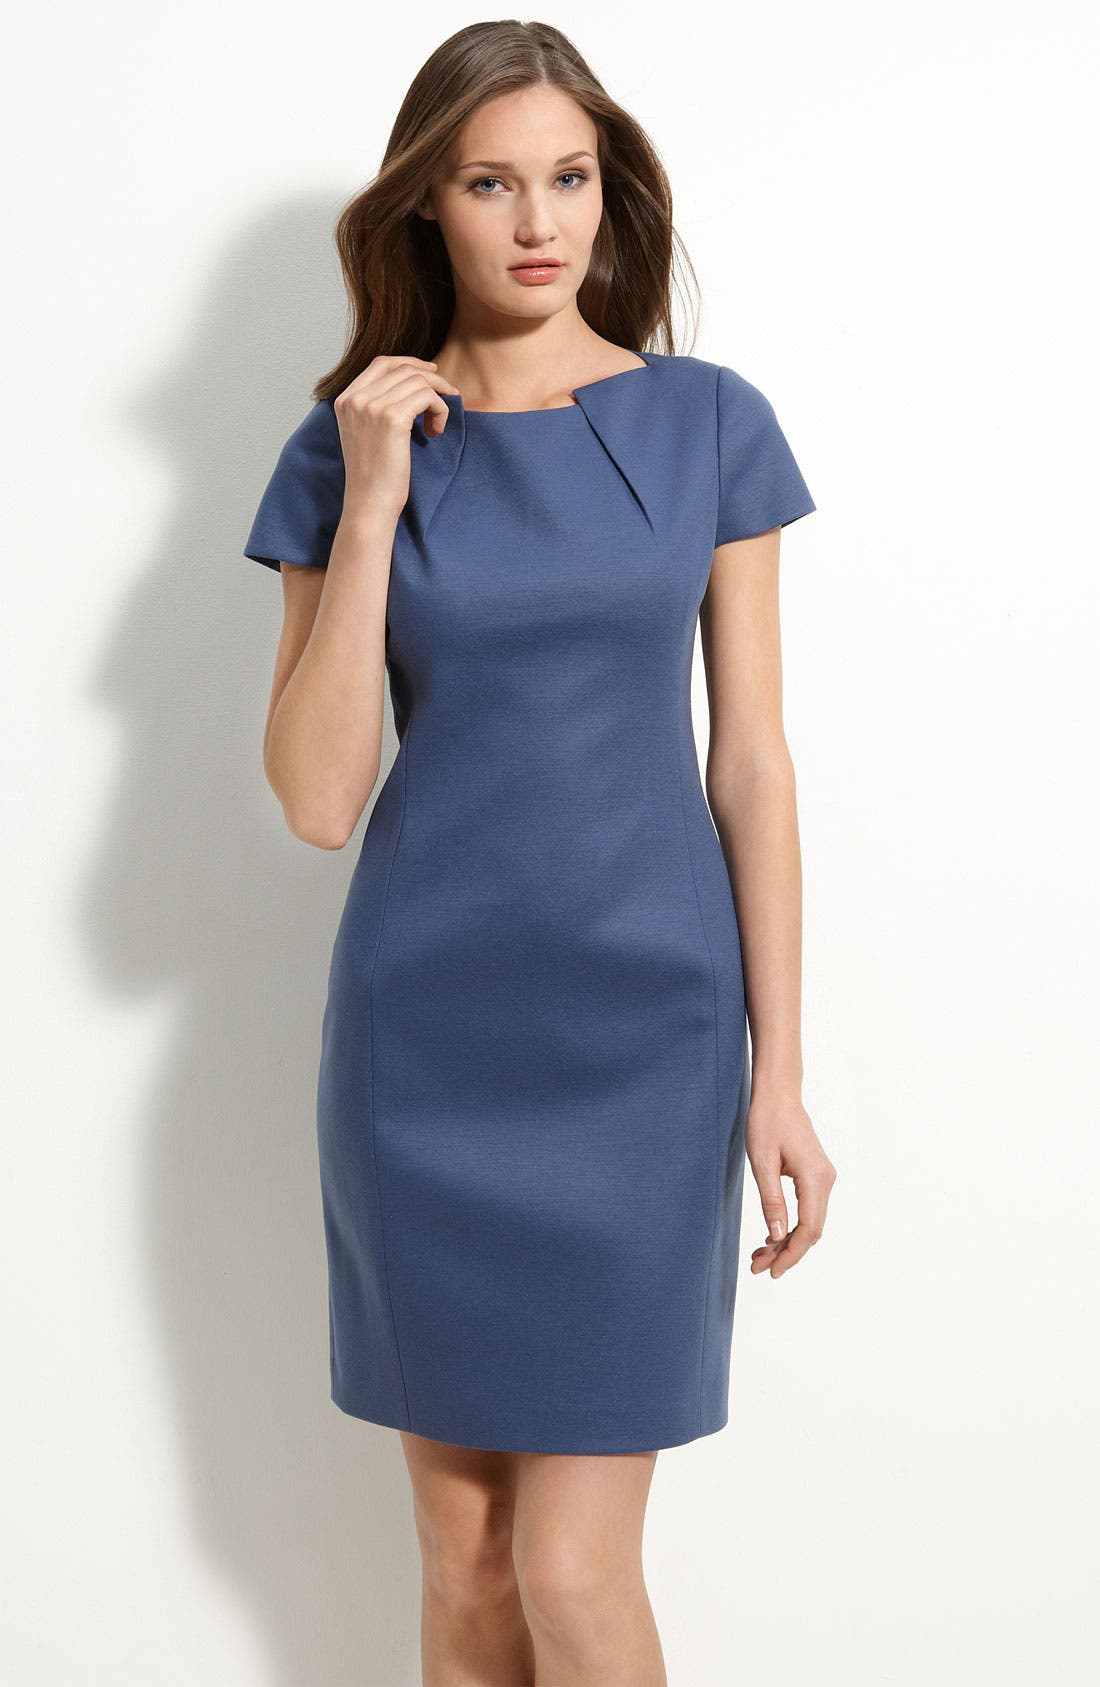 Alternate Image 1 Selected - Elie Tahari 'Alexandria' Wool Blend Sheath Dress